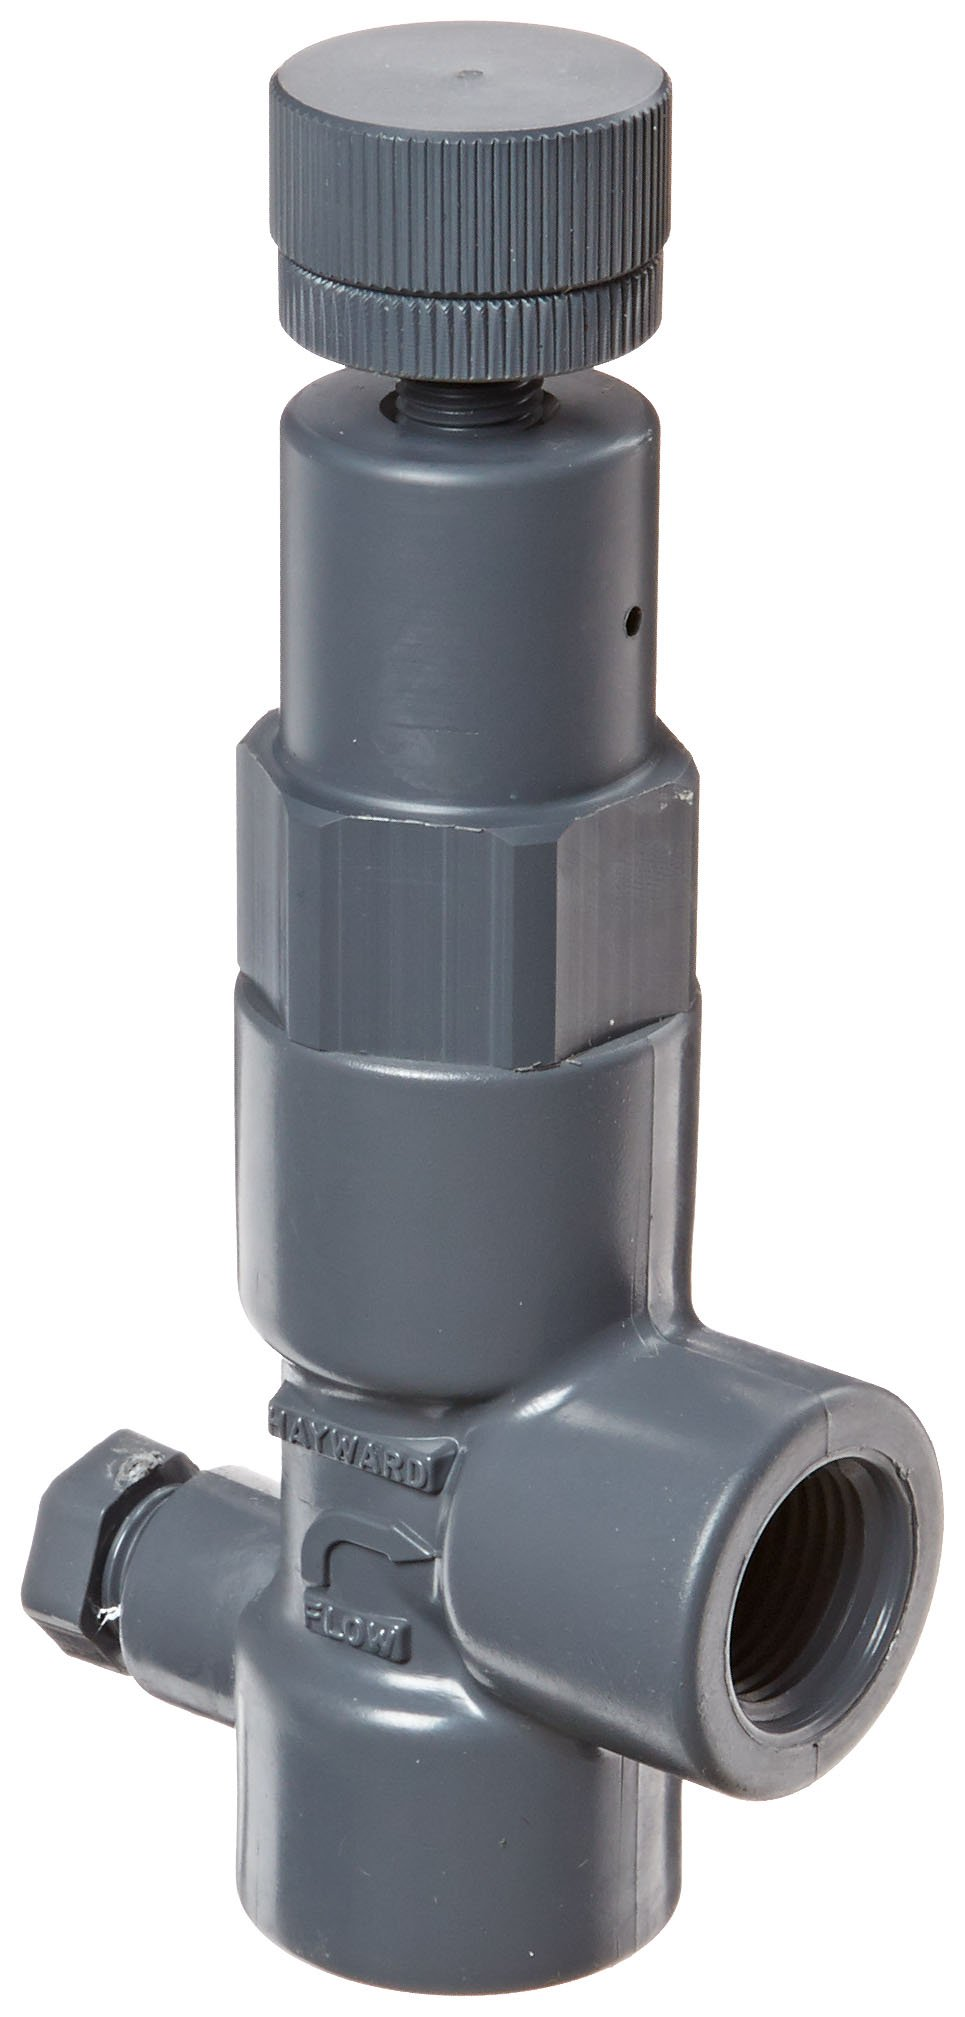 Hayward RV1050T Series RV Pressure Relief Valve, PVC with FPM Seals, Threaded End, 1/2'' Size